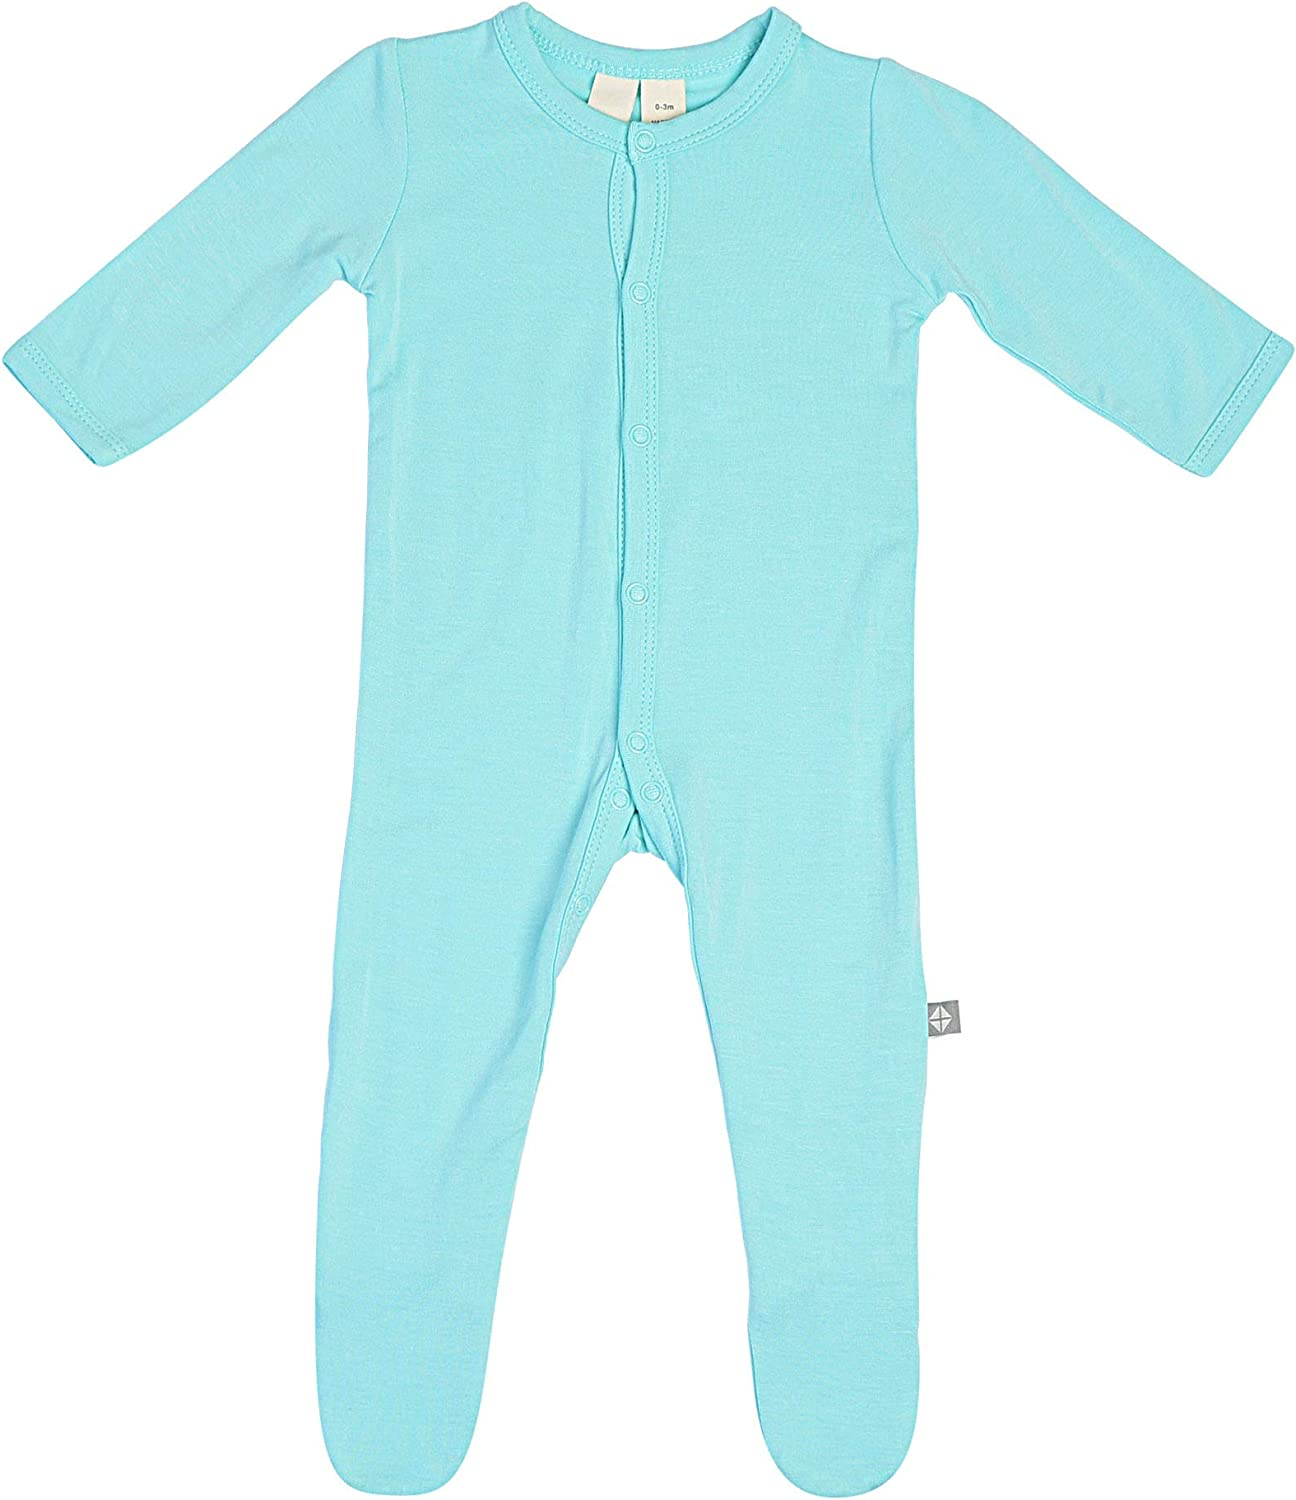 Baby Footed Pajamas Made of Soft Organic Bamboo Material Solid Colors KYTE BABY Footies 0-24 Months